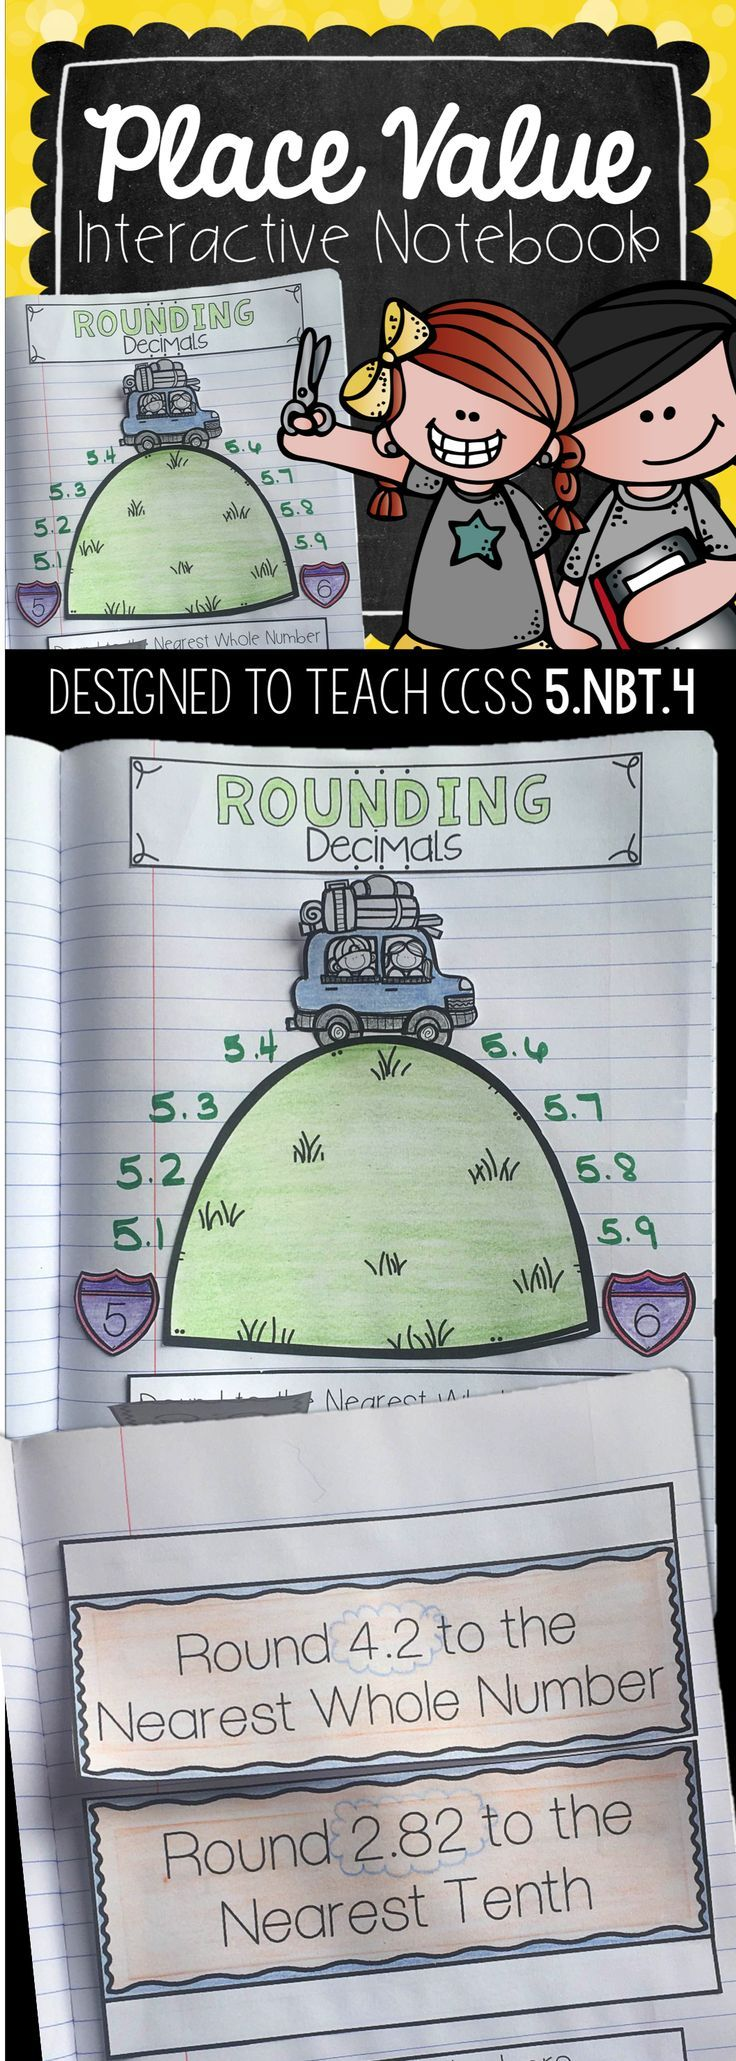 5th Grade Interactive Math Notebook: These Common Core Aligned Interactive Notebooks are designed to give a visual cues and practice problems to teach rounding decimals in fifth grade.